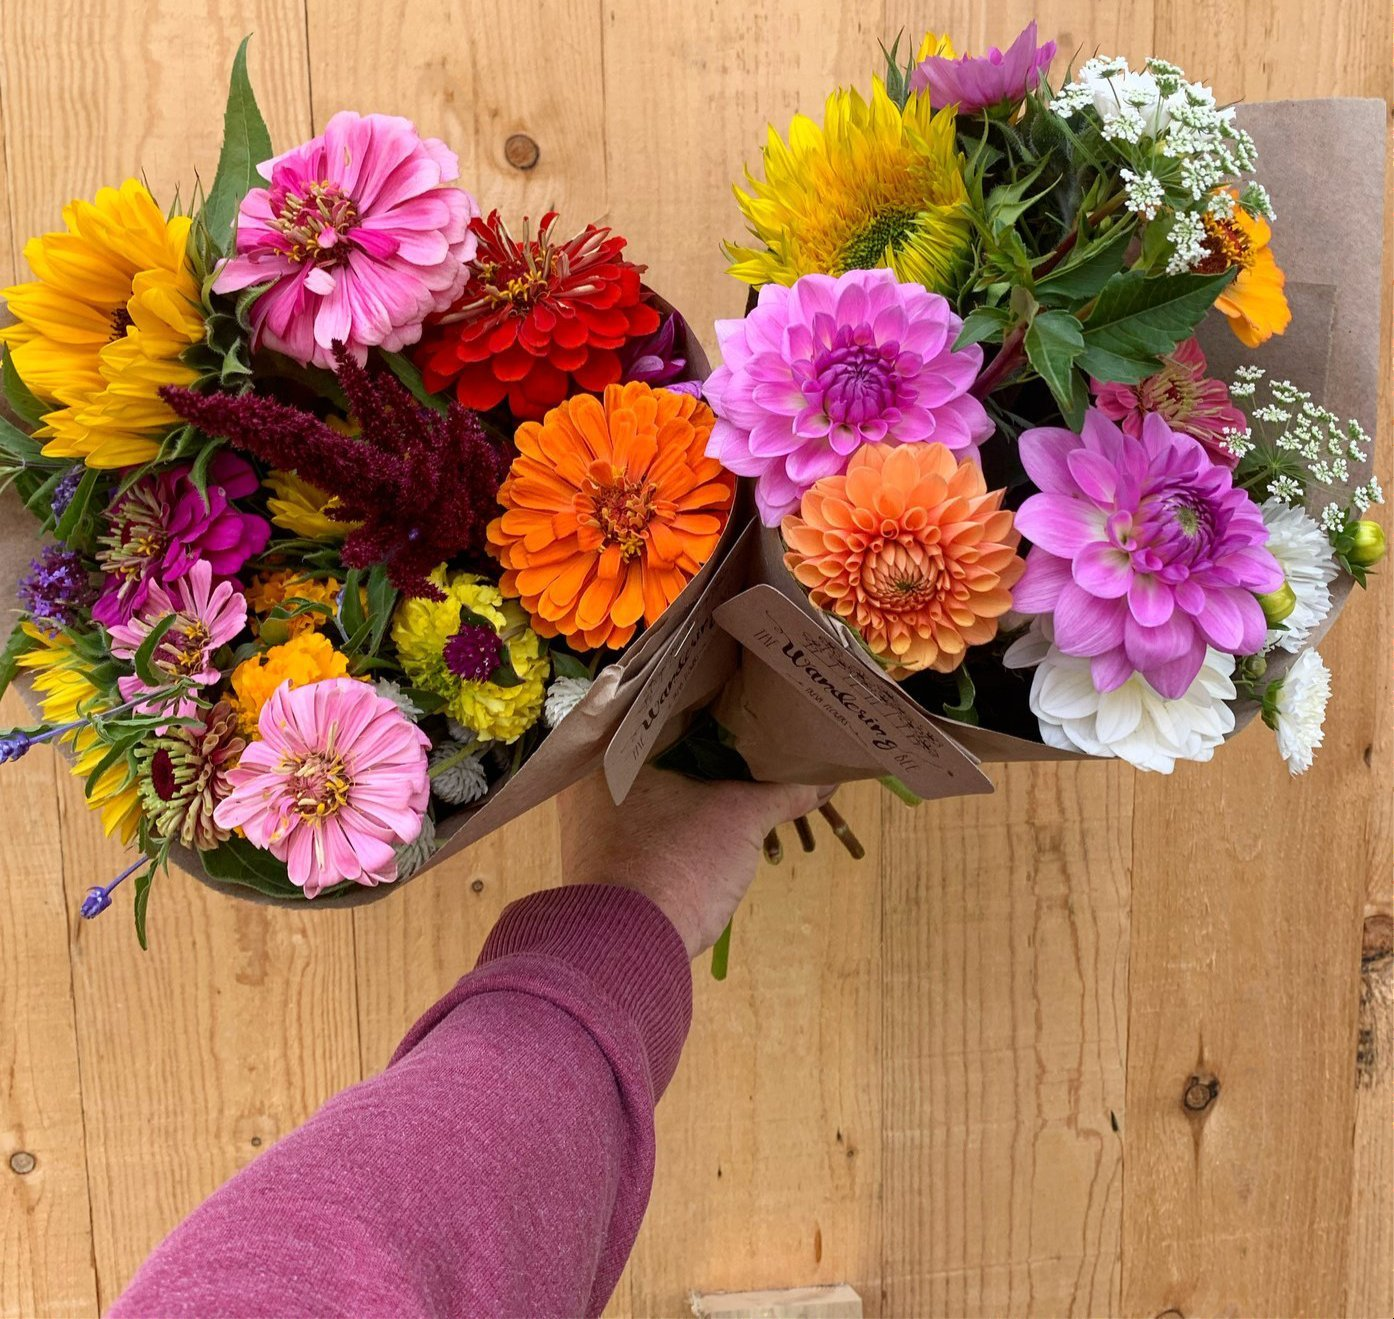 Locally Grown Flower Subscription - (Full Subscription)